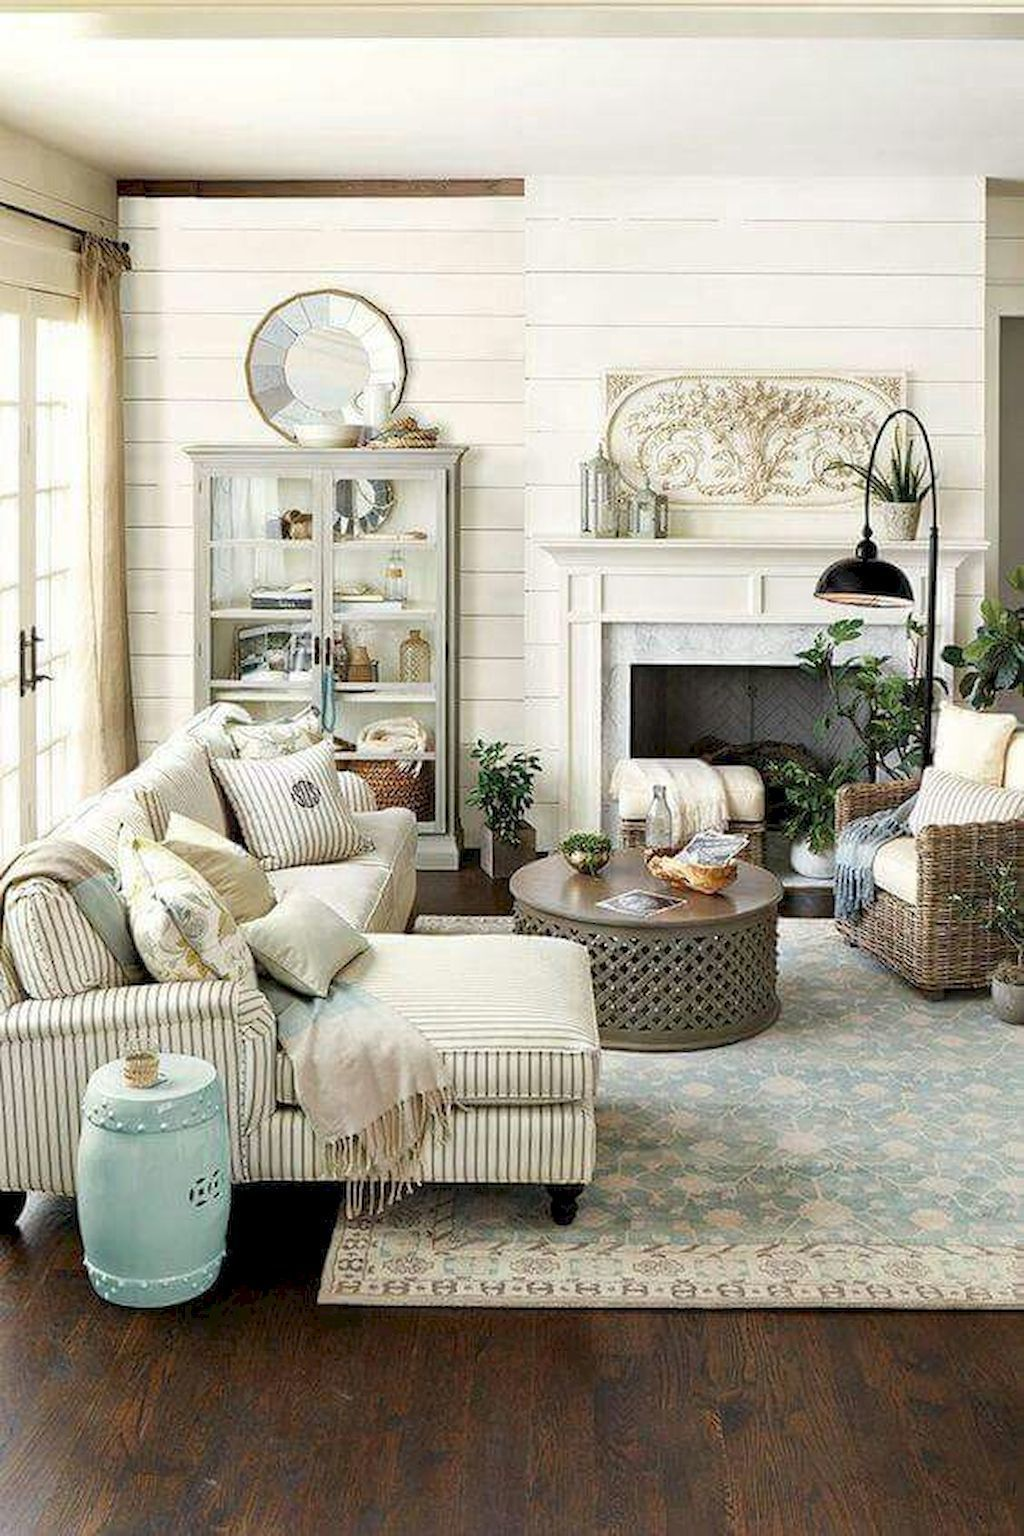 Vintage Small Living Room Decorating Ideas 2 Farm House Living Room Farmhouse Style Living Room Modern Farmhouse Living Room #small #living #room #decorating #ideas #with #fireplace